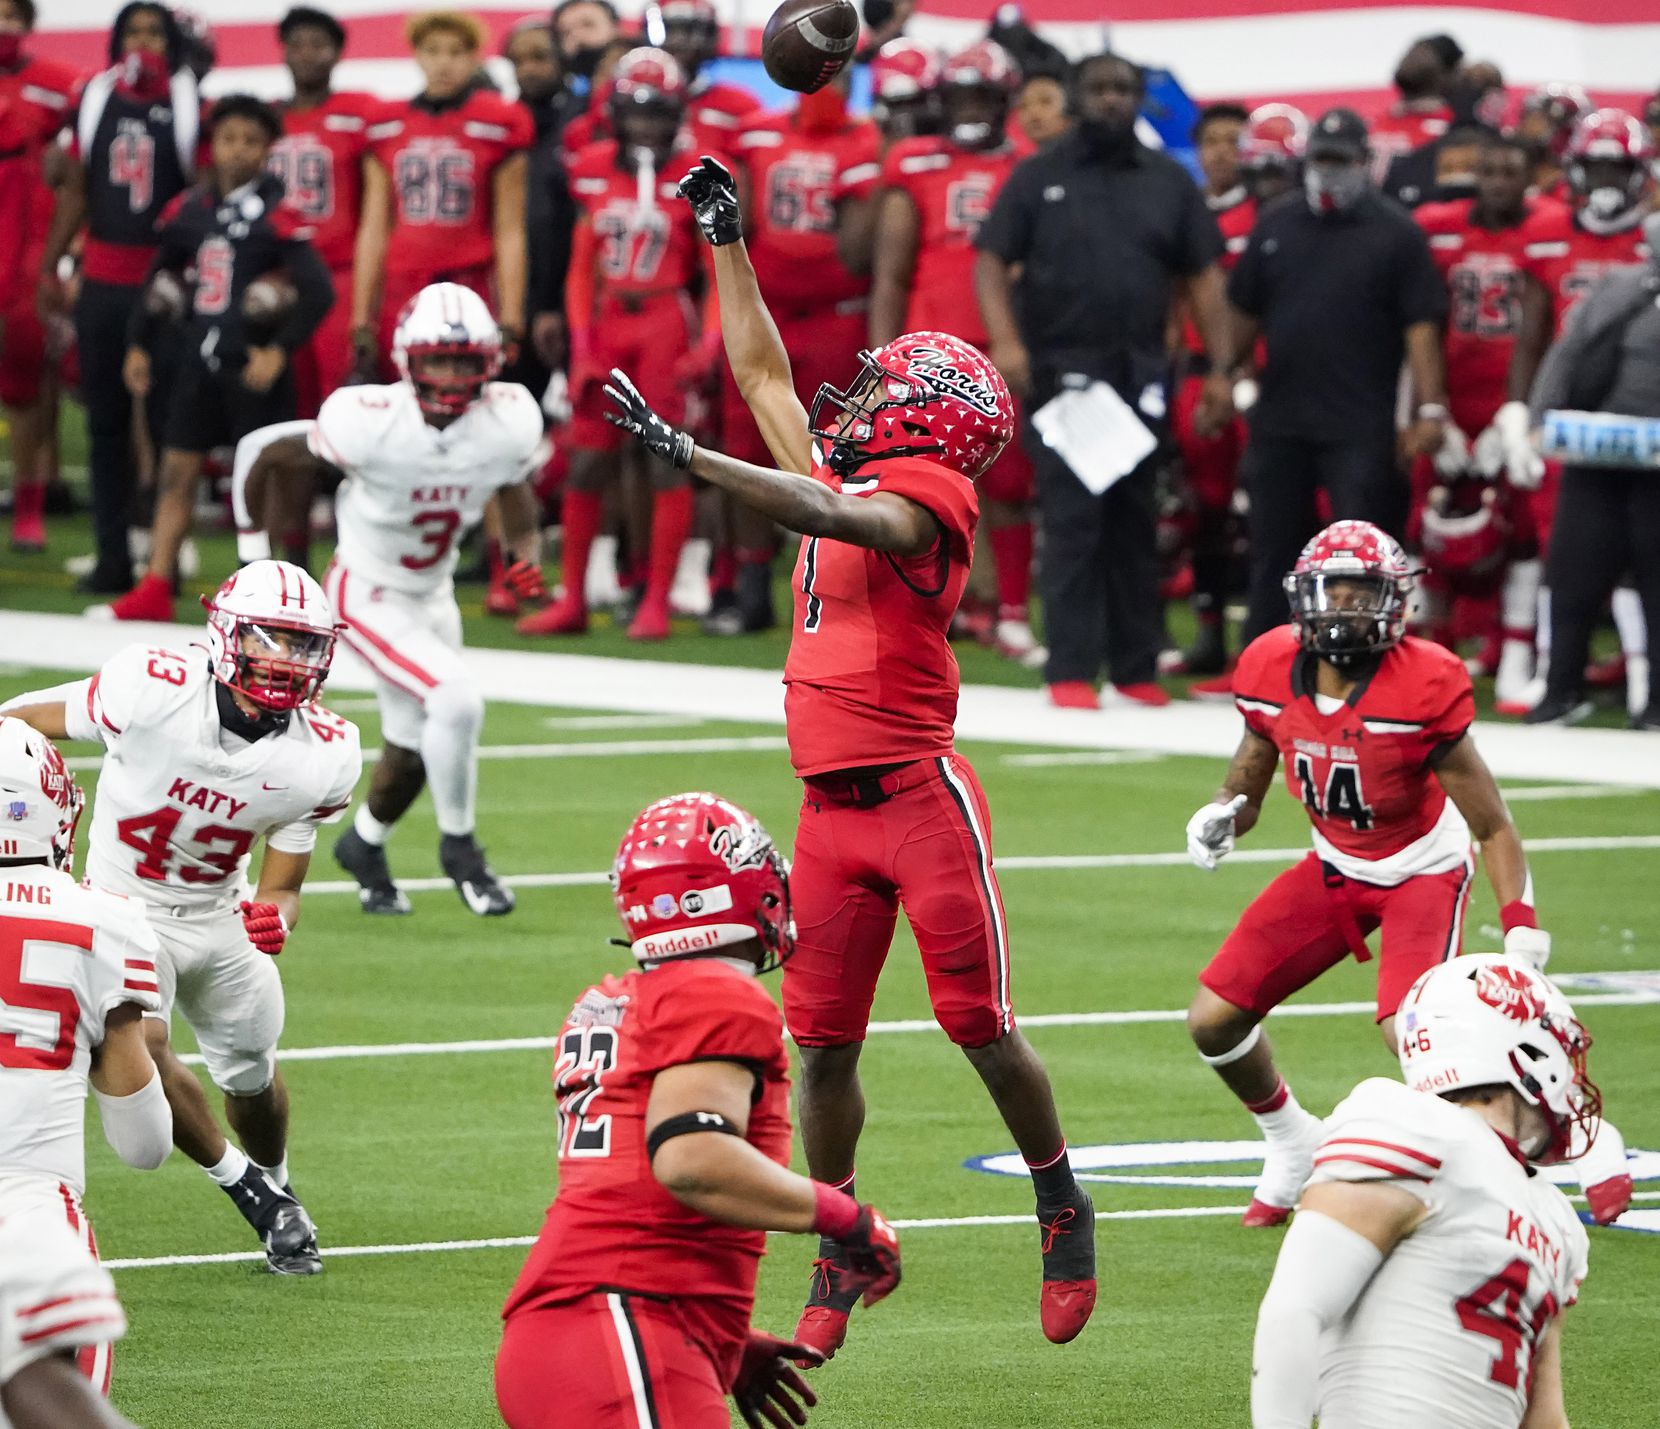 Cedar Hill wide receiver Anthony Thomas IV (1) has a pass go off his hands during the first half of the Class 6A Division II state football championship game against Katy at AT&T Stadium on Saturday, Jan. 16, 2021, in Arlington, Texas.